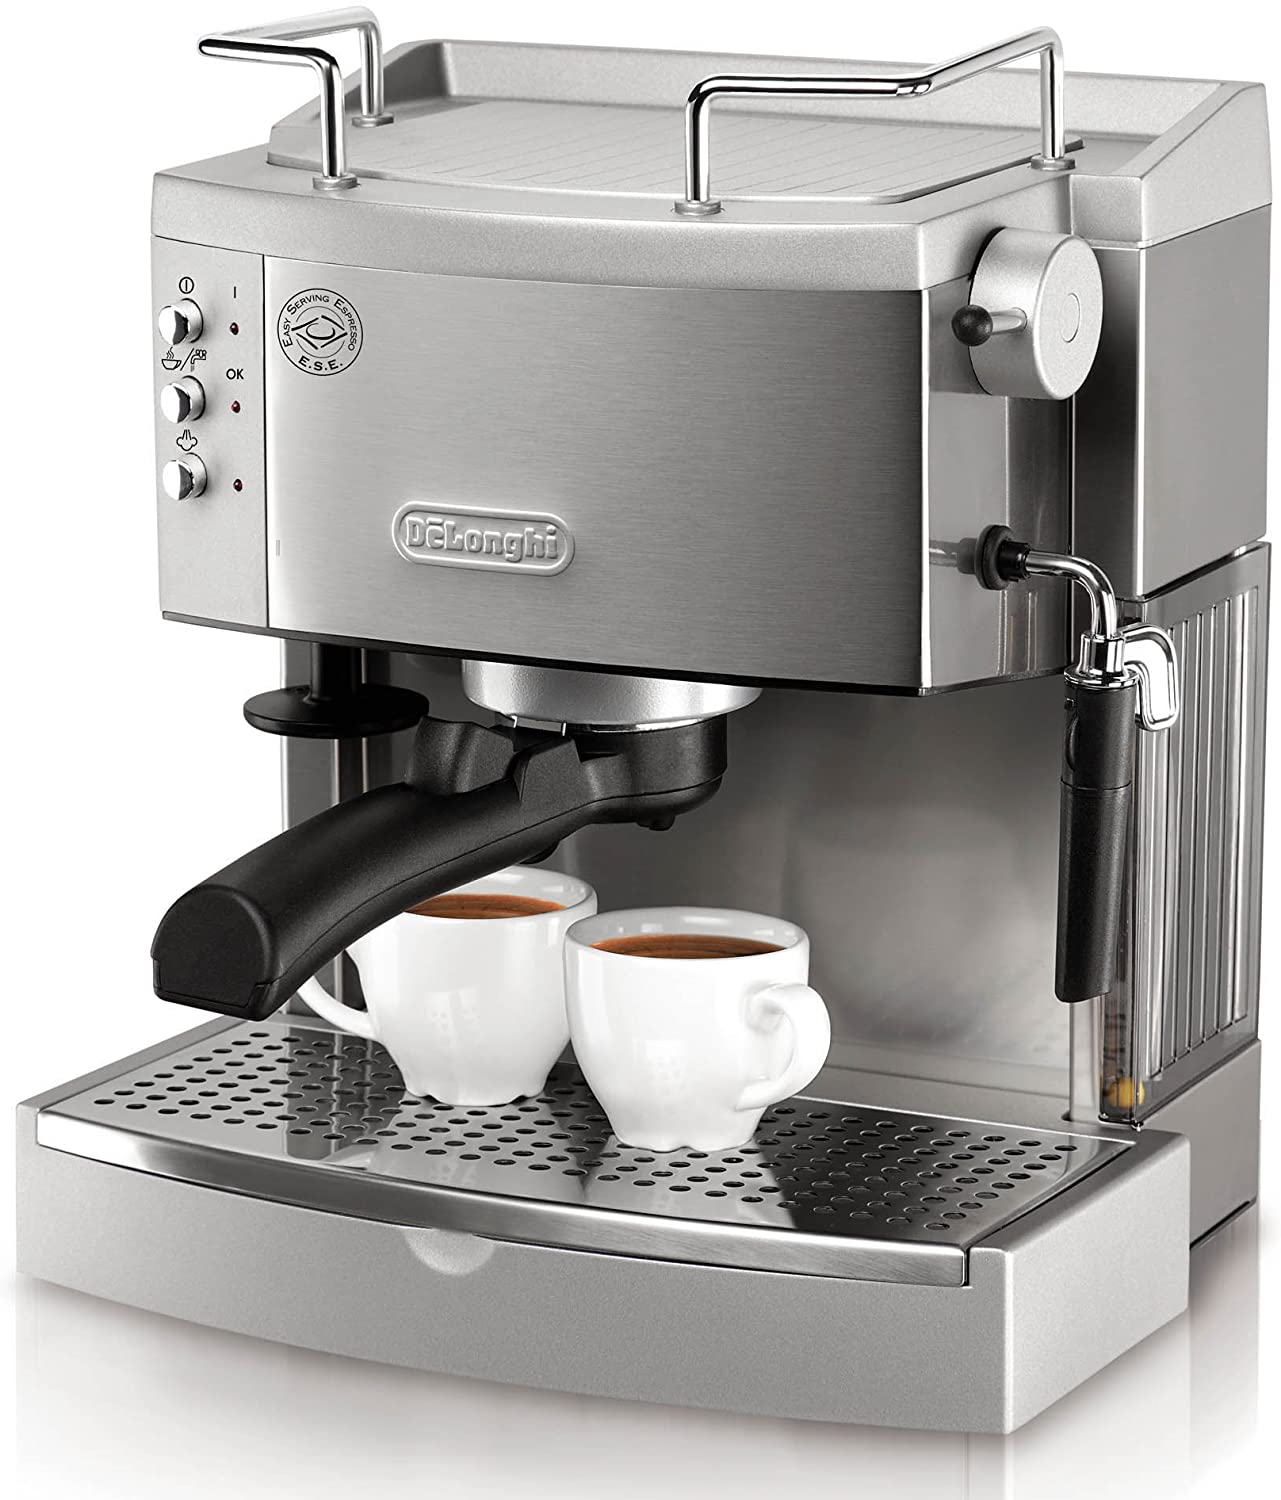 DeLonghi EC702 15-Bar-Pump Espresso Maker, capsule machine Amazon